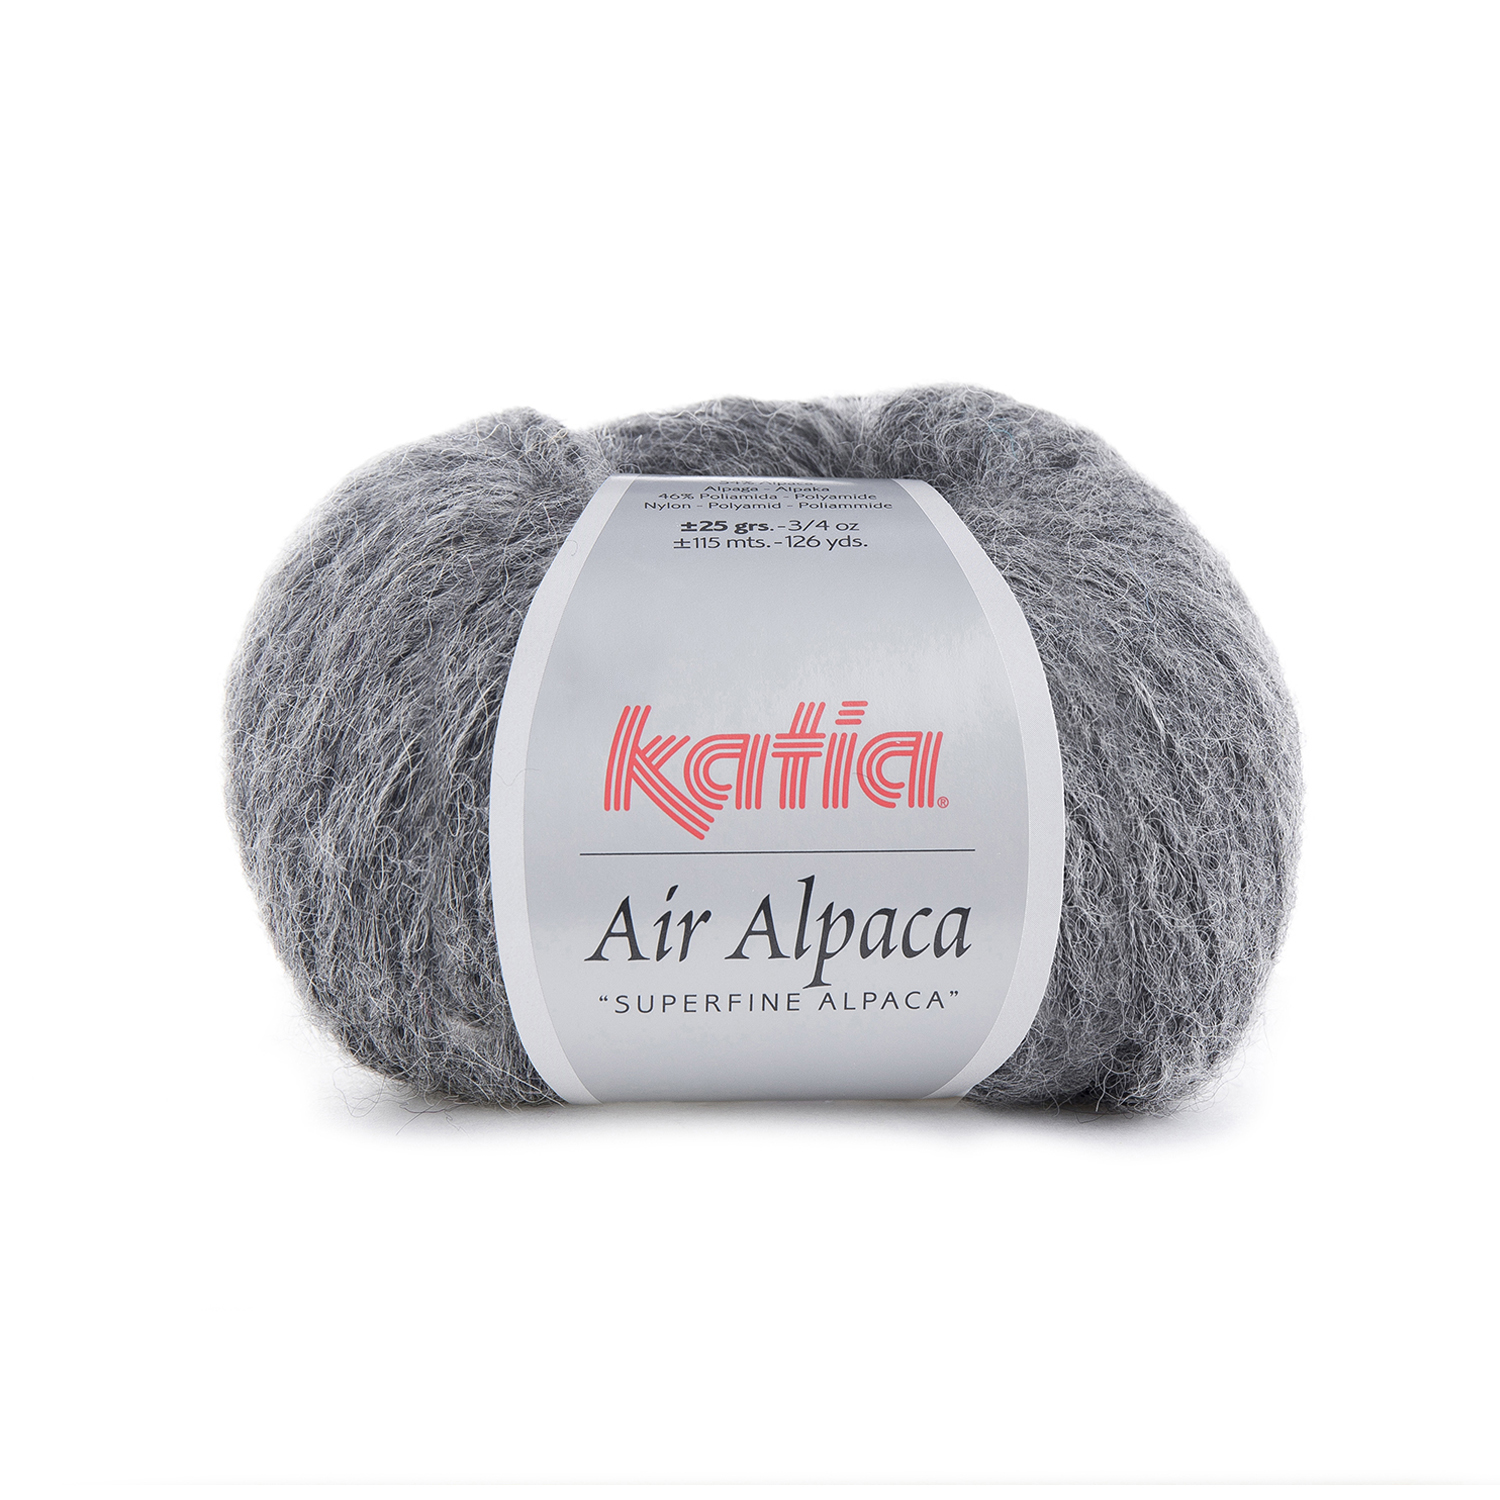 AIR ALPACA - Autumn / Winter - yarns | Katia.com